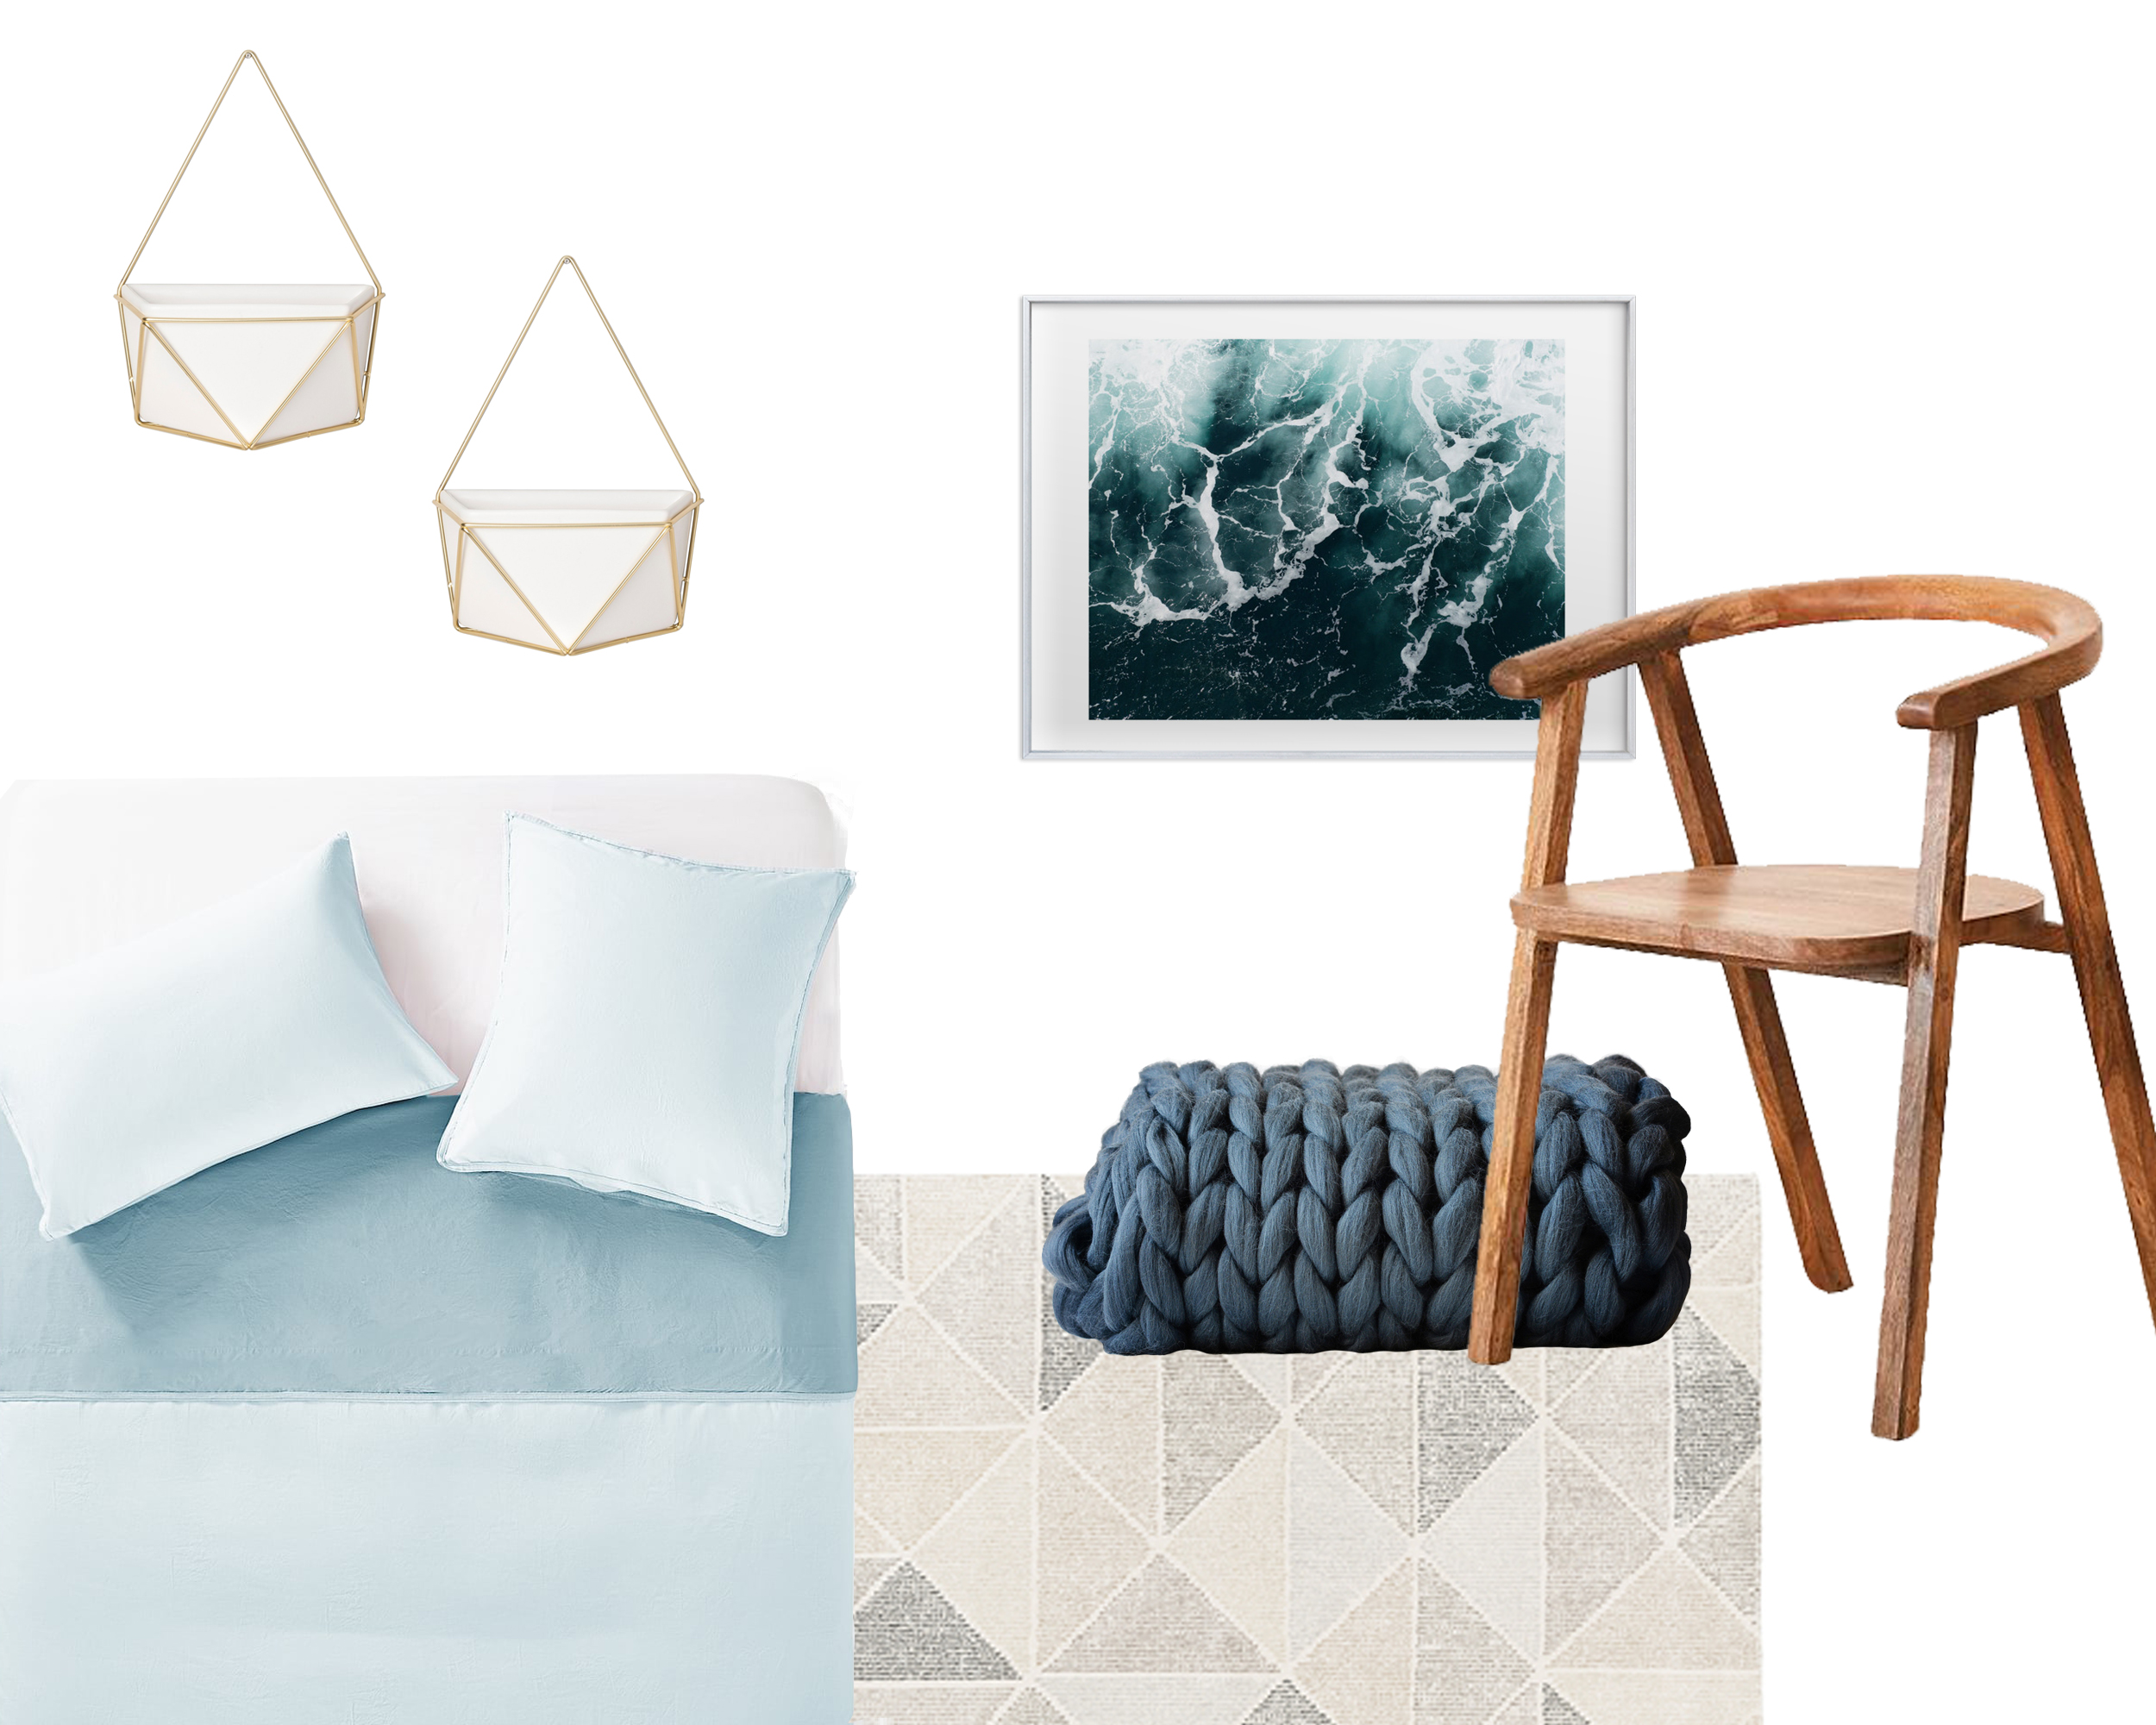 Dorm Room Decor: Scandi Chic | Design Confetti